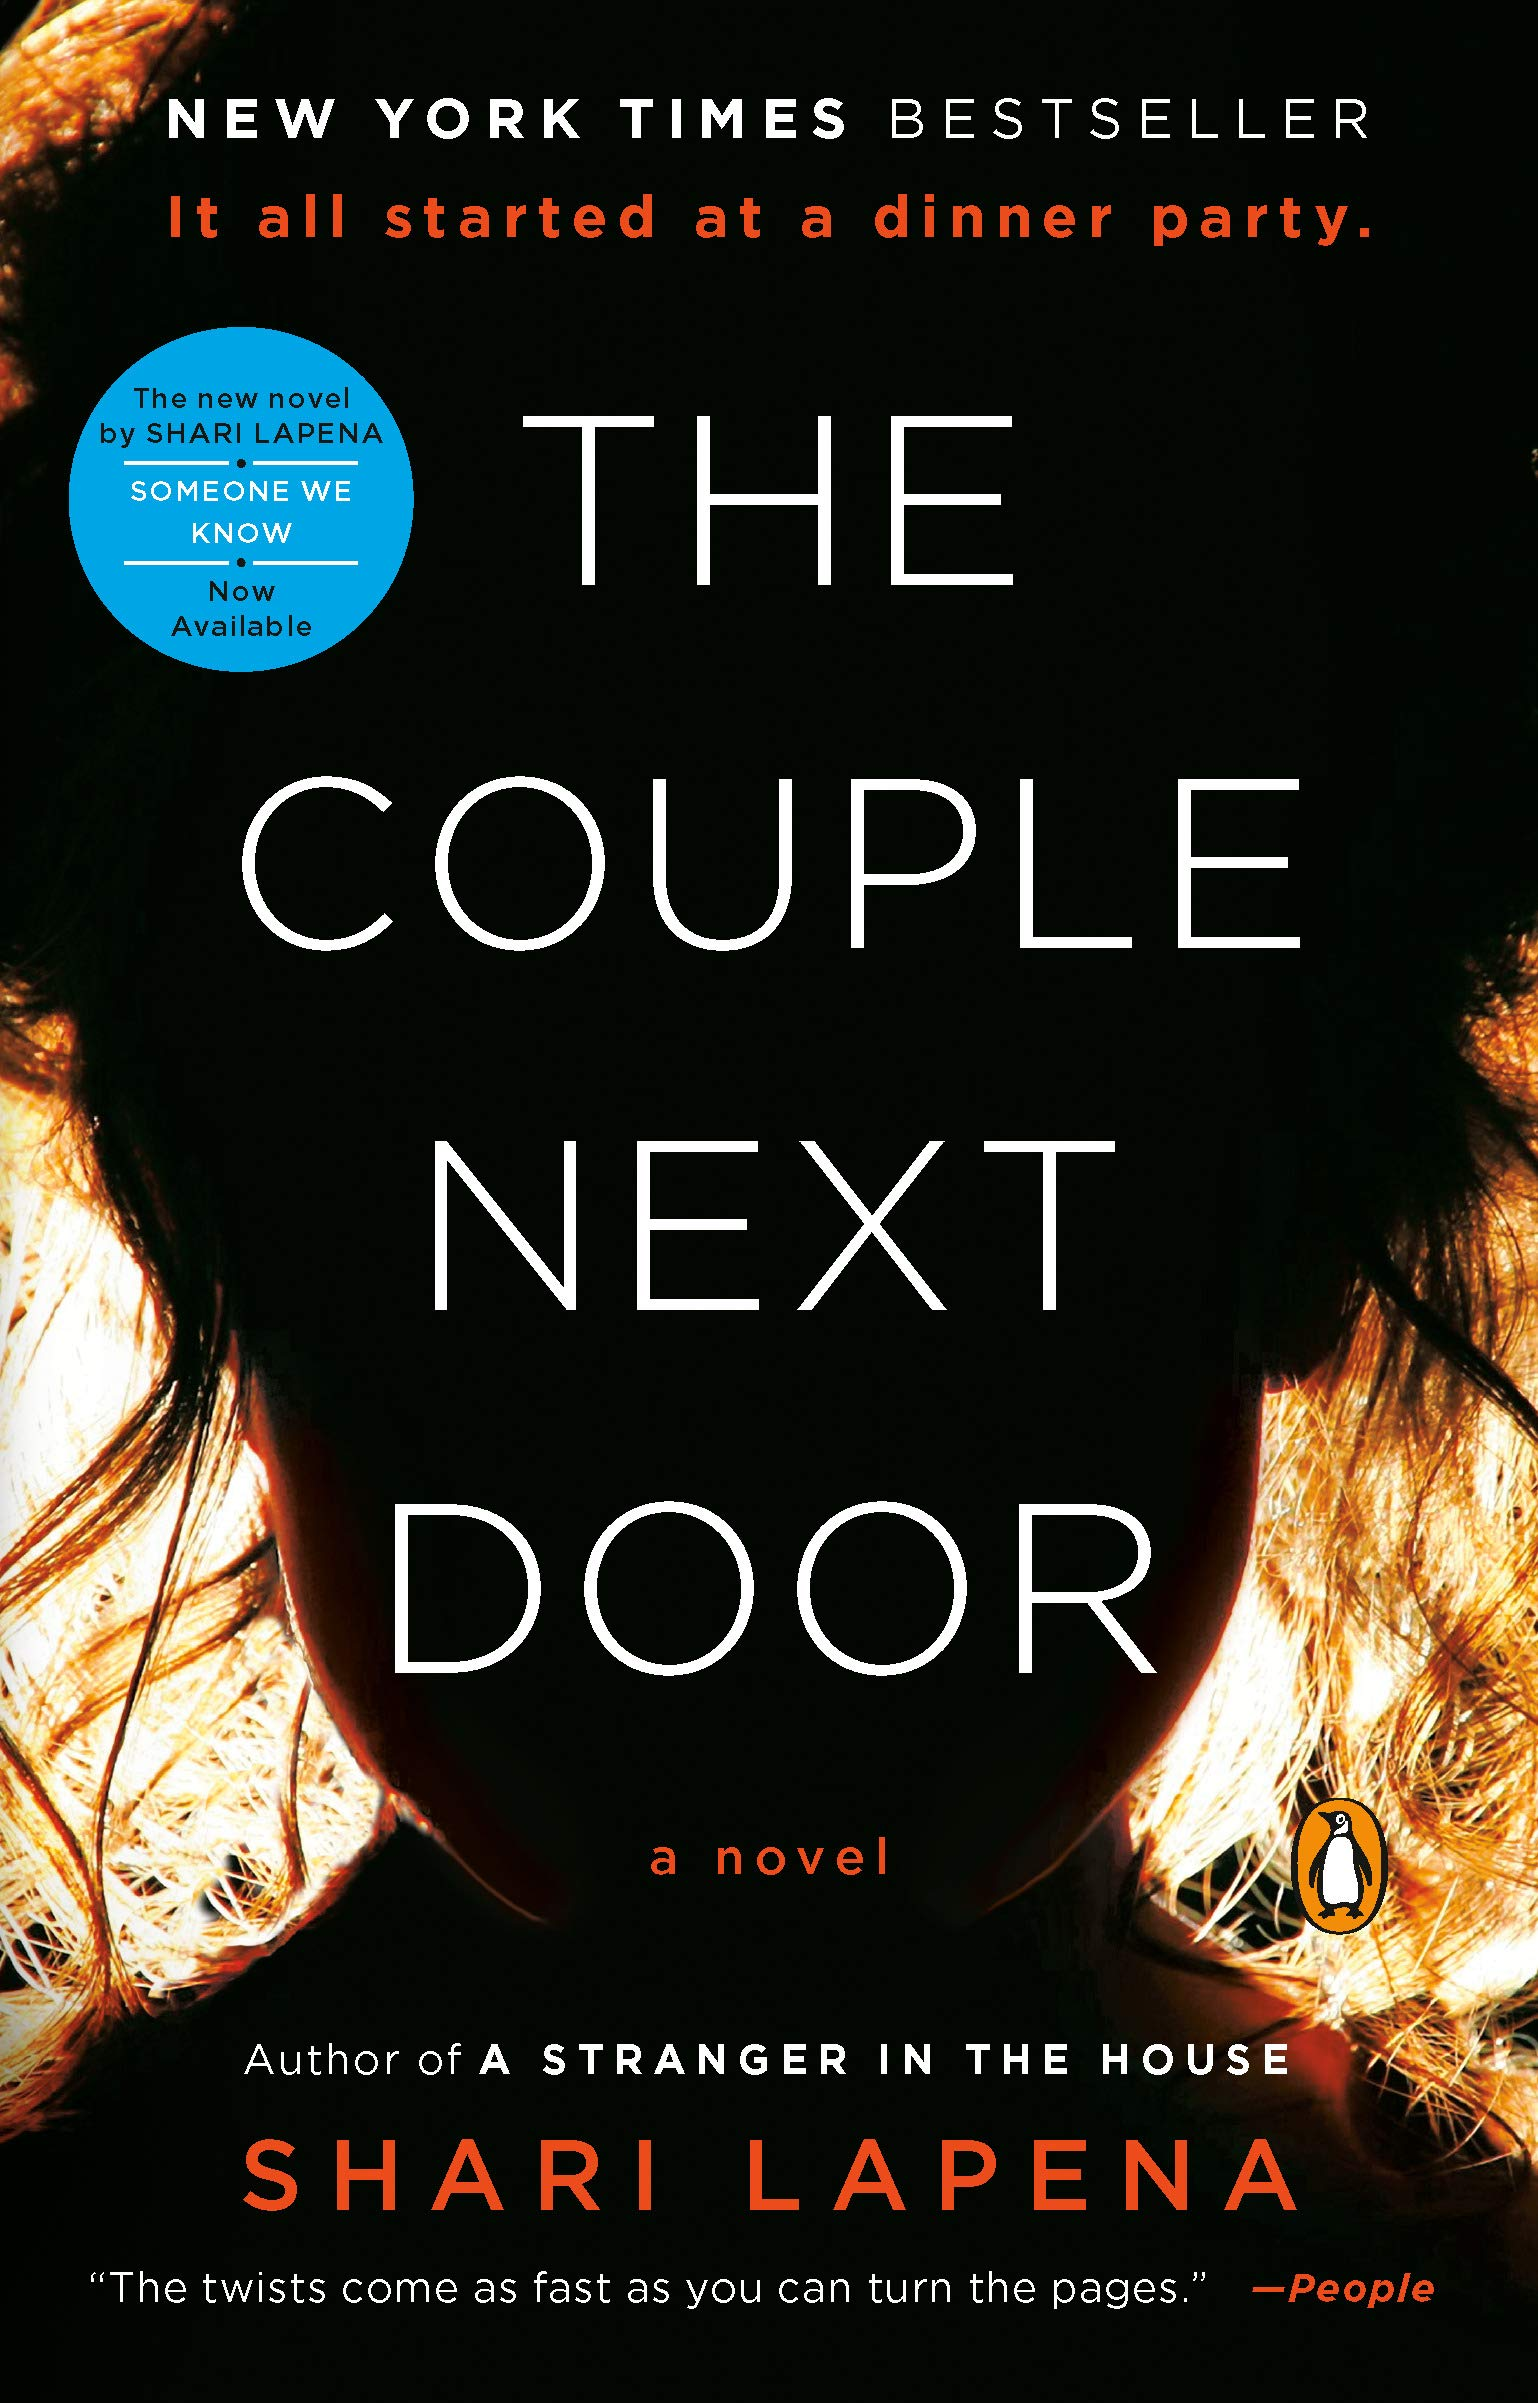 Minisode #4: Hate-pisode: The Couple Next Door - The Book Squad finally exorcises our anger over The Couple Next Door by Shari Lapena, the book we love to hate, in our first ever hate-pisode. This book has everything: baby kidnapping, shoddy detective work, kinky sex games, and, of course, Zoloft. Listen as we throw shade at the mistreatment of mental illness, flat characters, non-thrilling